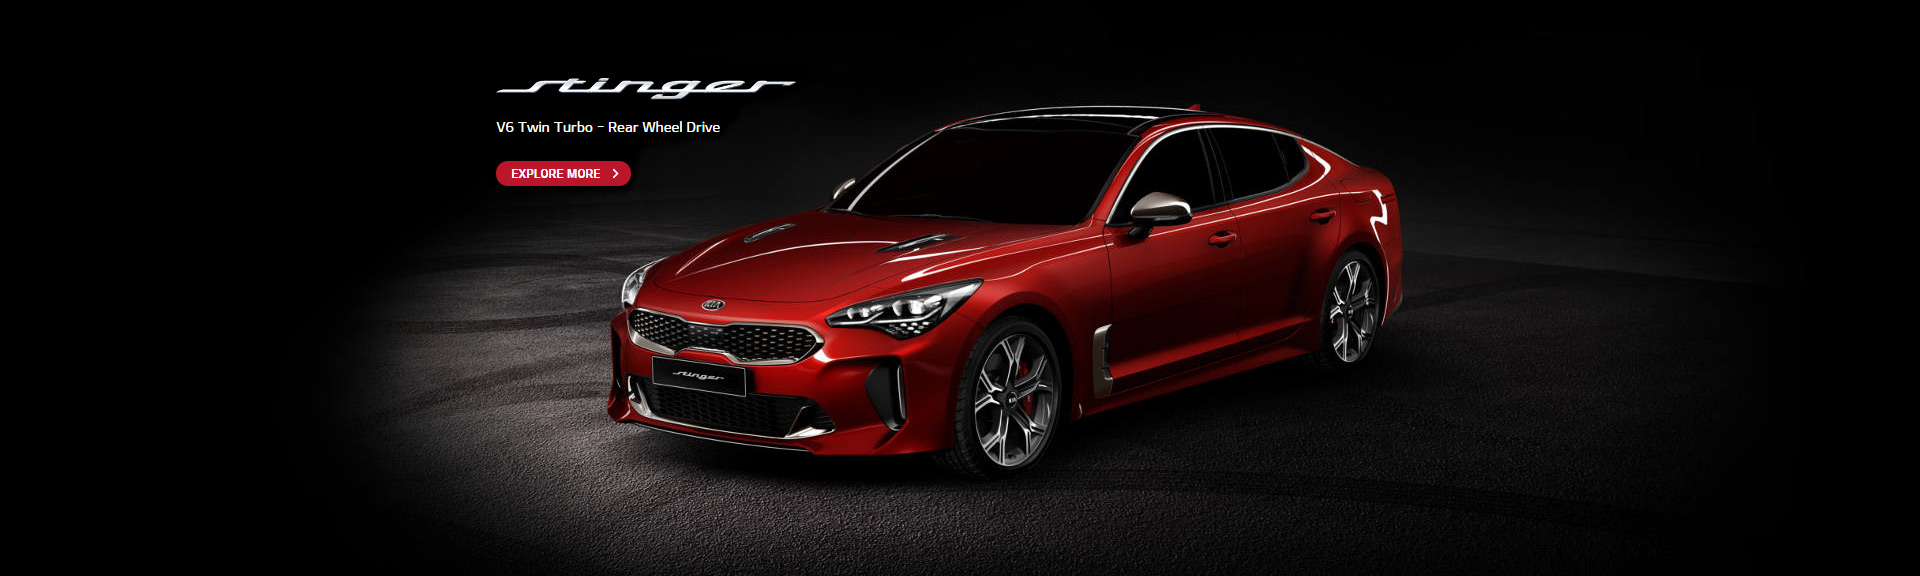 Kia Stinger Coming Soon Banner